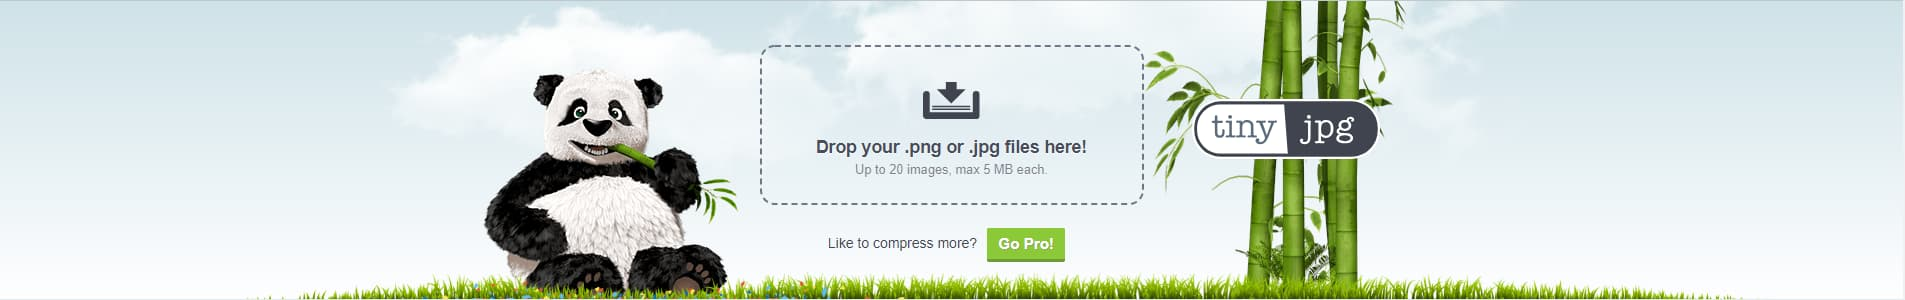 How to compress images online with TinyJPG